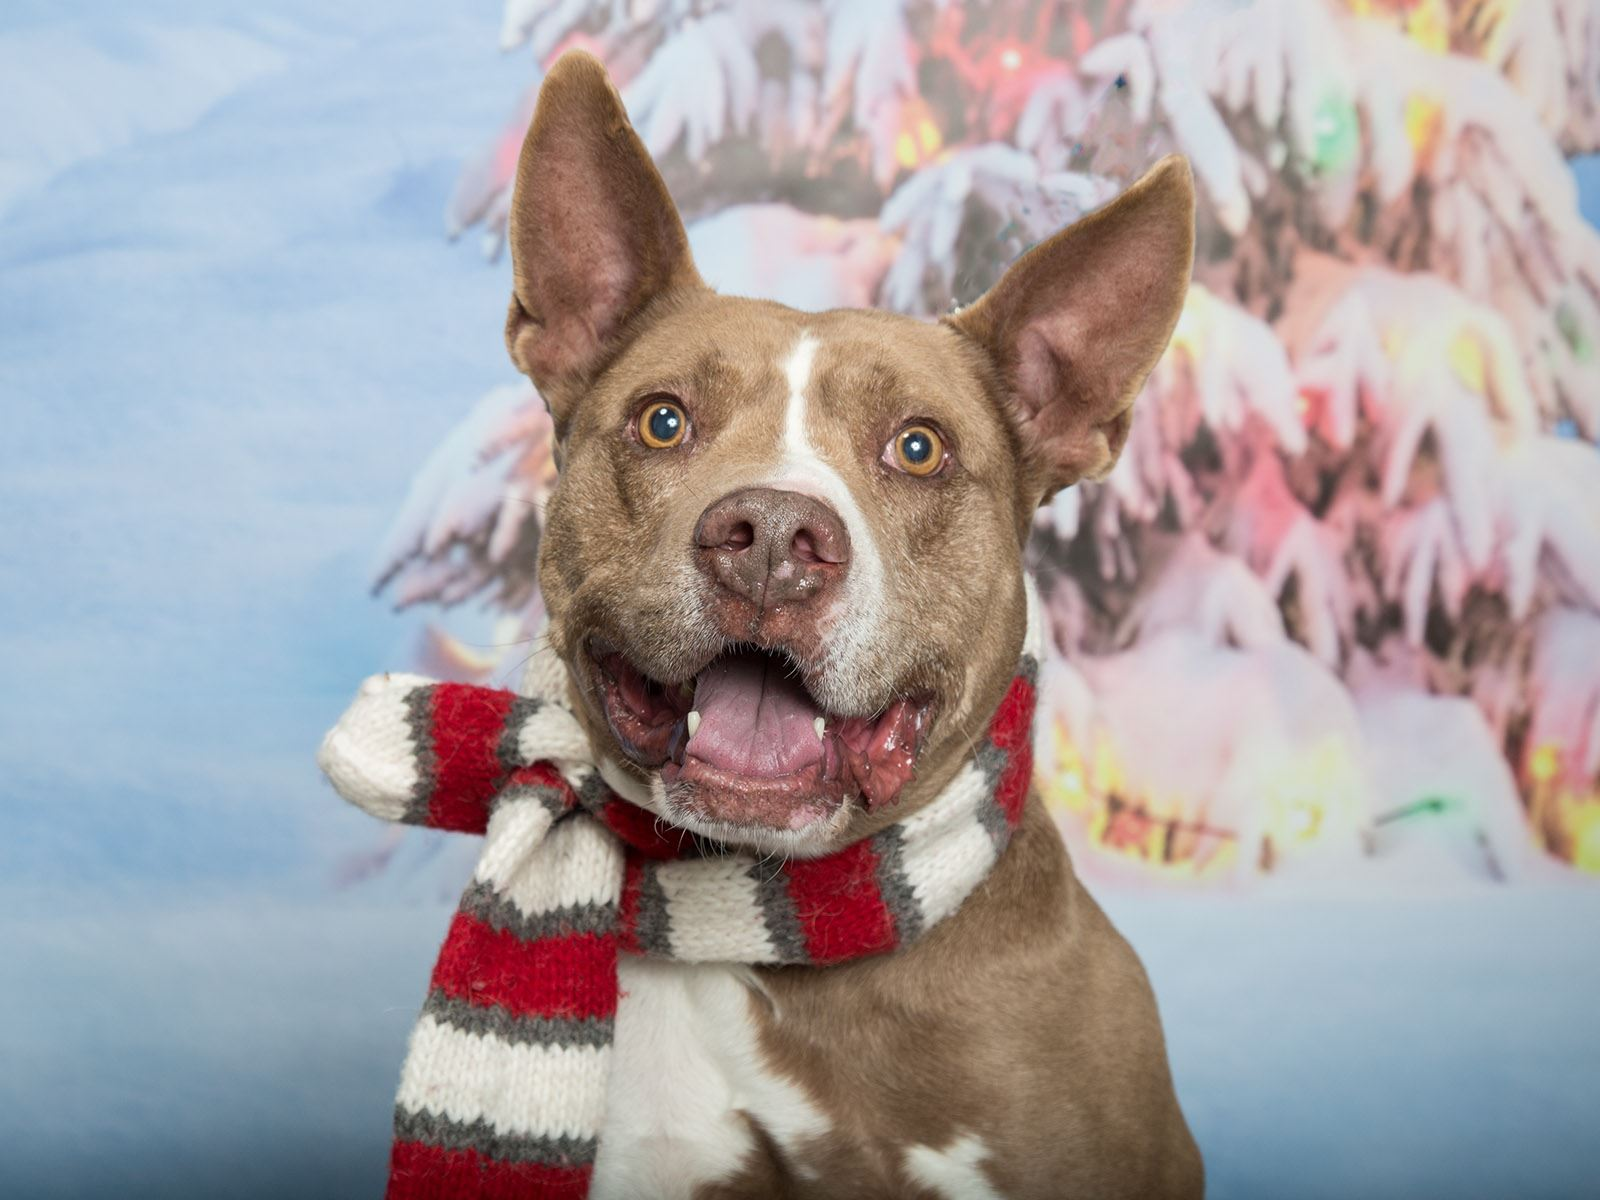 A shelter dog dressed in a holiday scarf